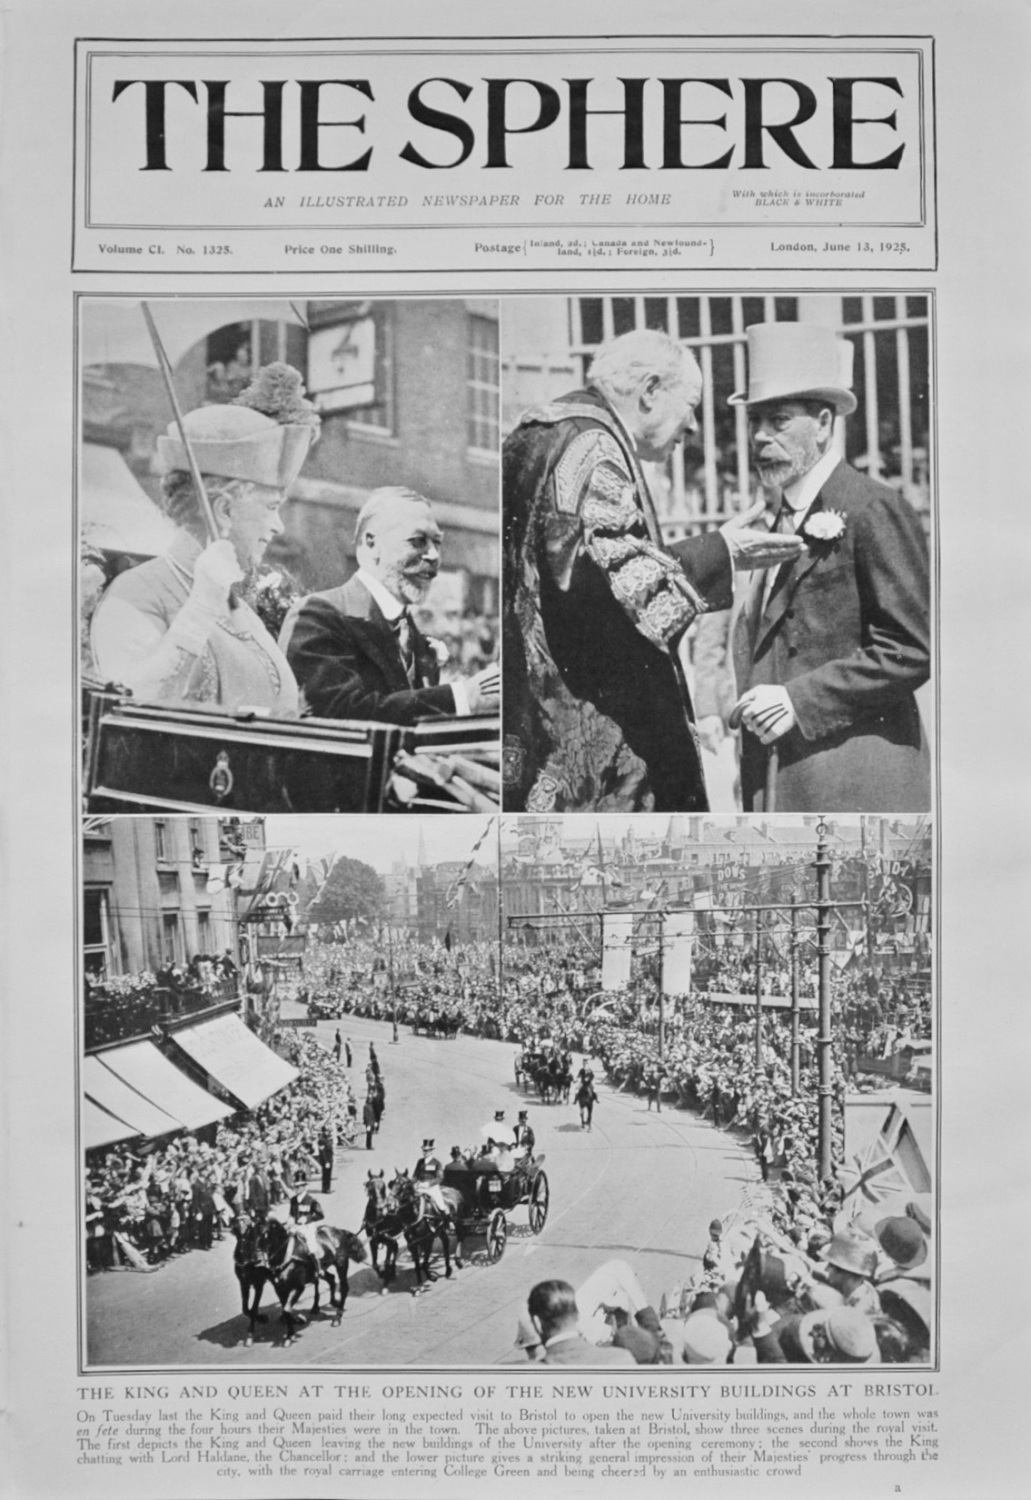 The Sphere - June 13, 1925